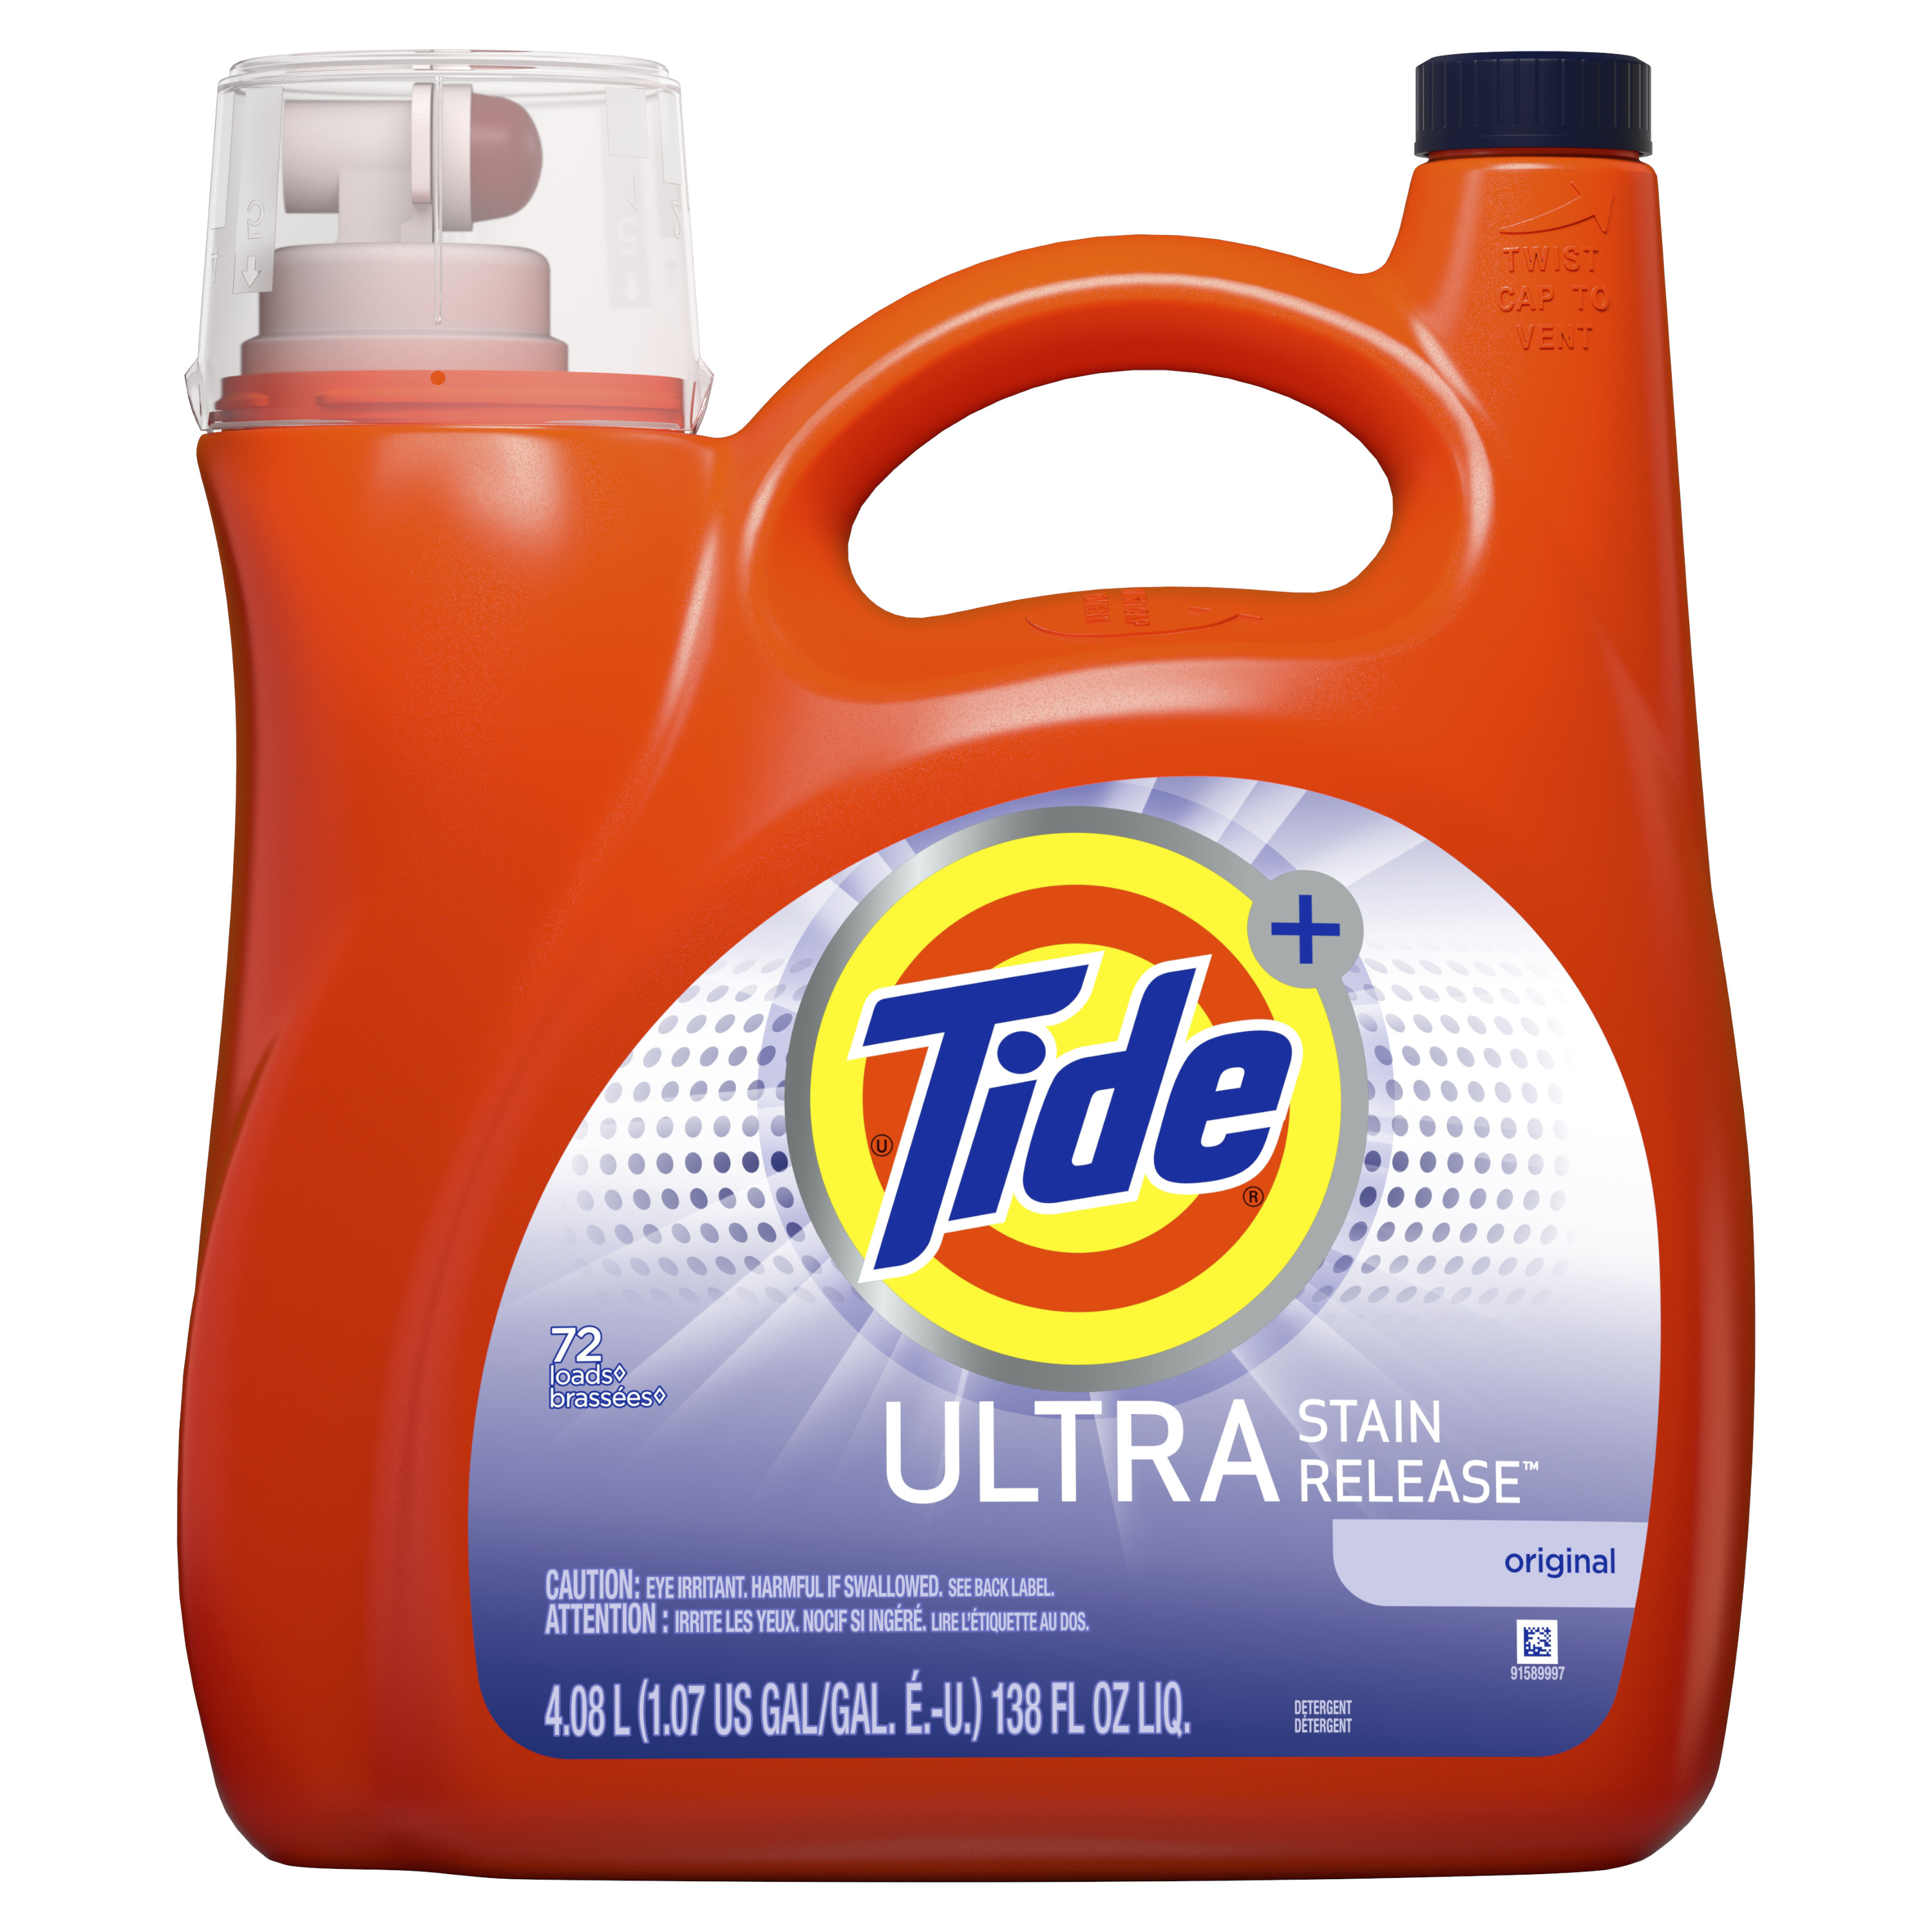 Tide Ultra Stain Release HE Turbo Clean Liquid Laundry Detergent, 138 oz, 72 loads